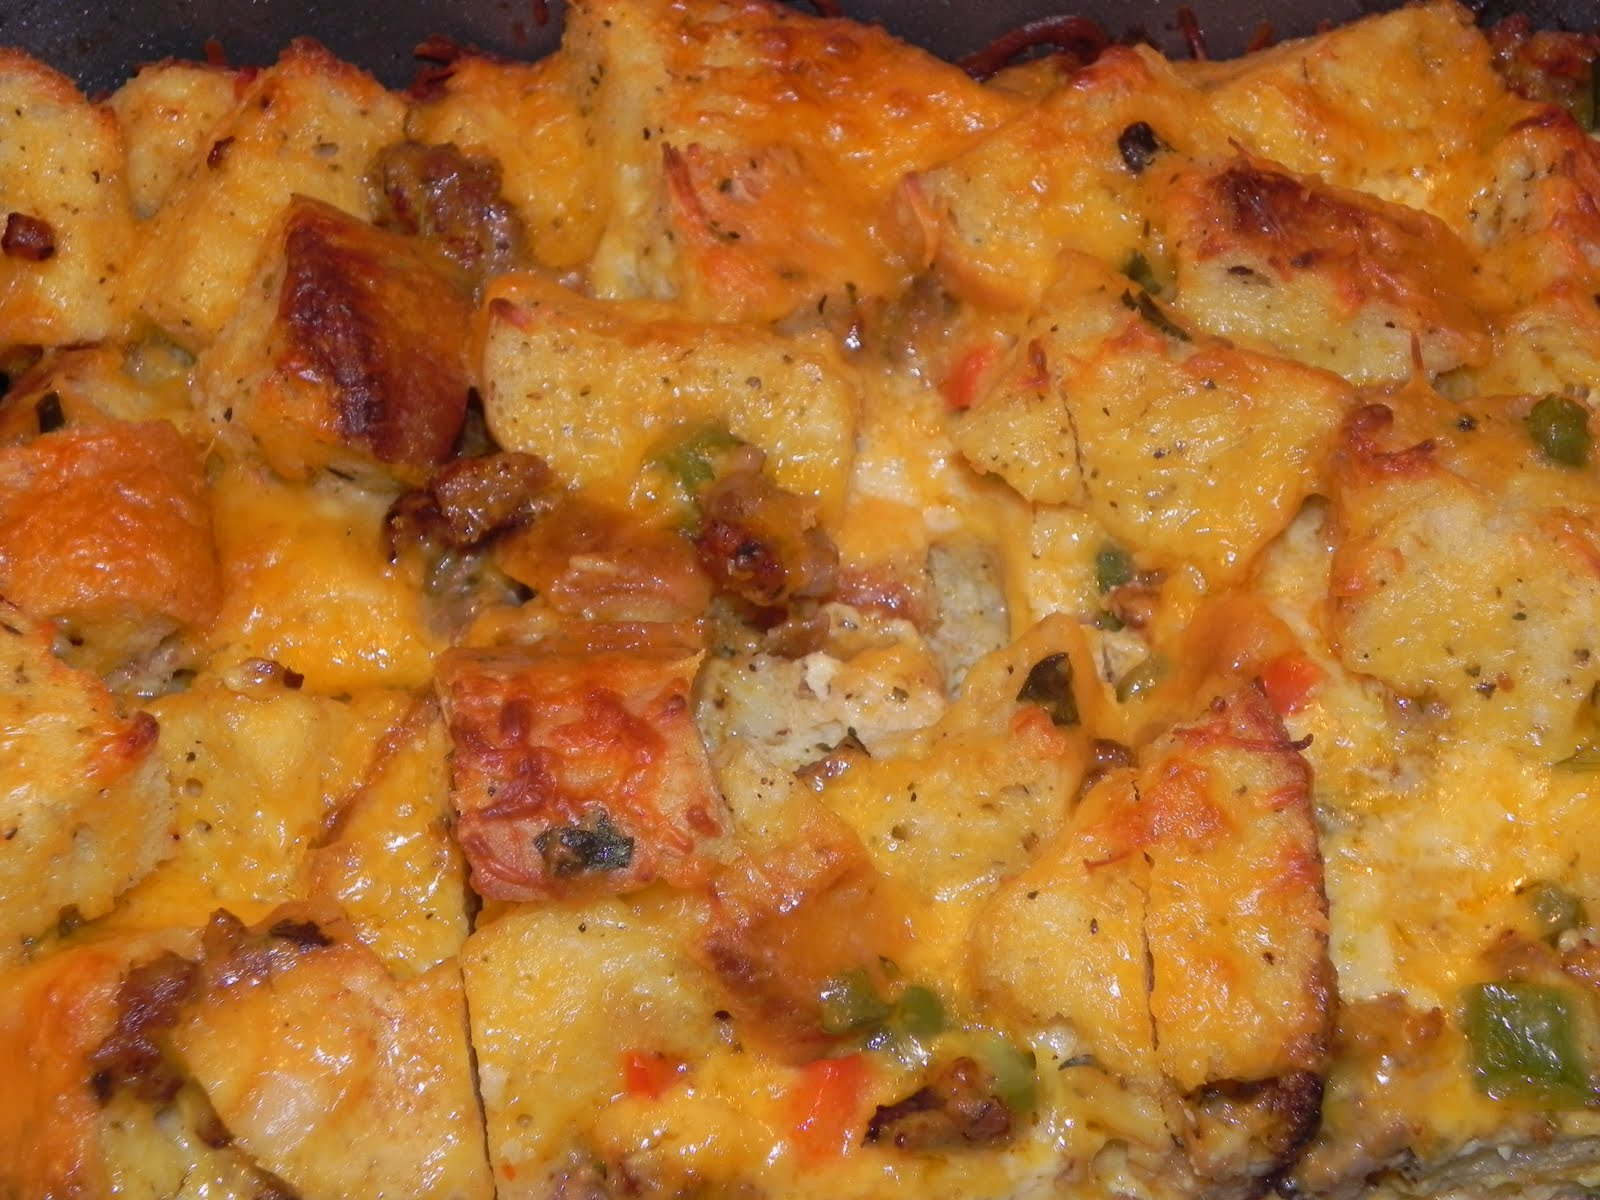 Farrah's Food Adventures: Christmas Morning Breakfast Casserole